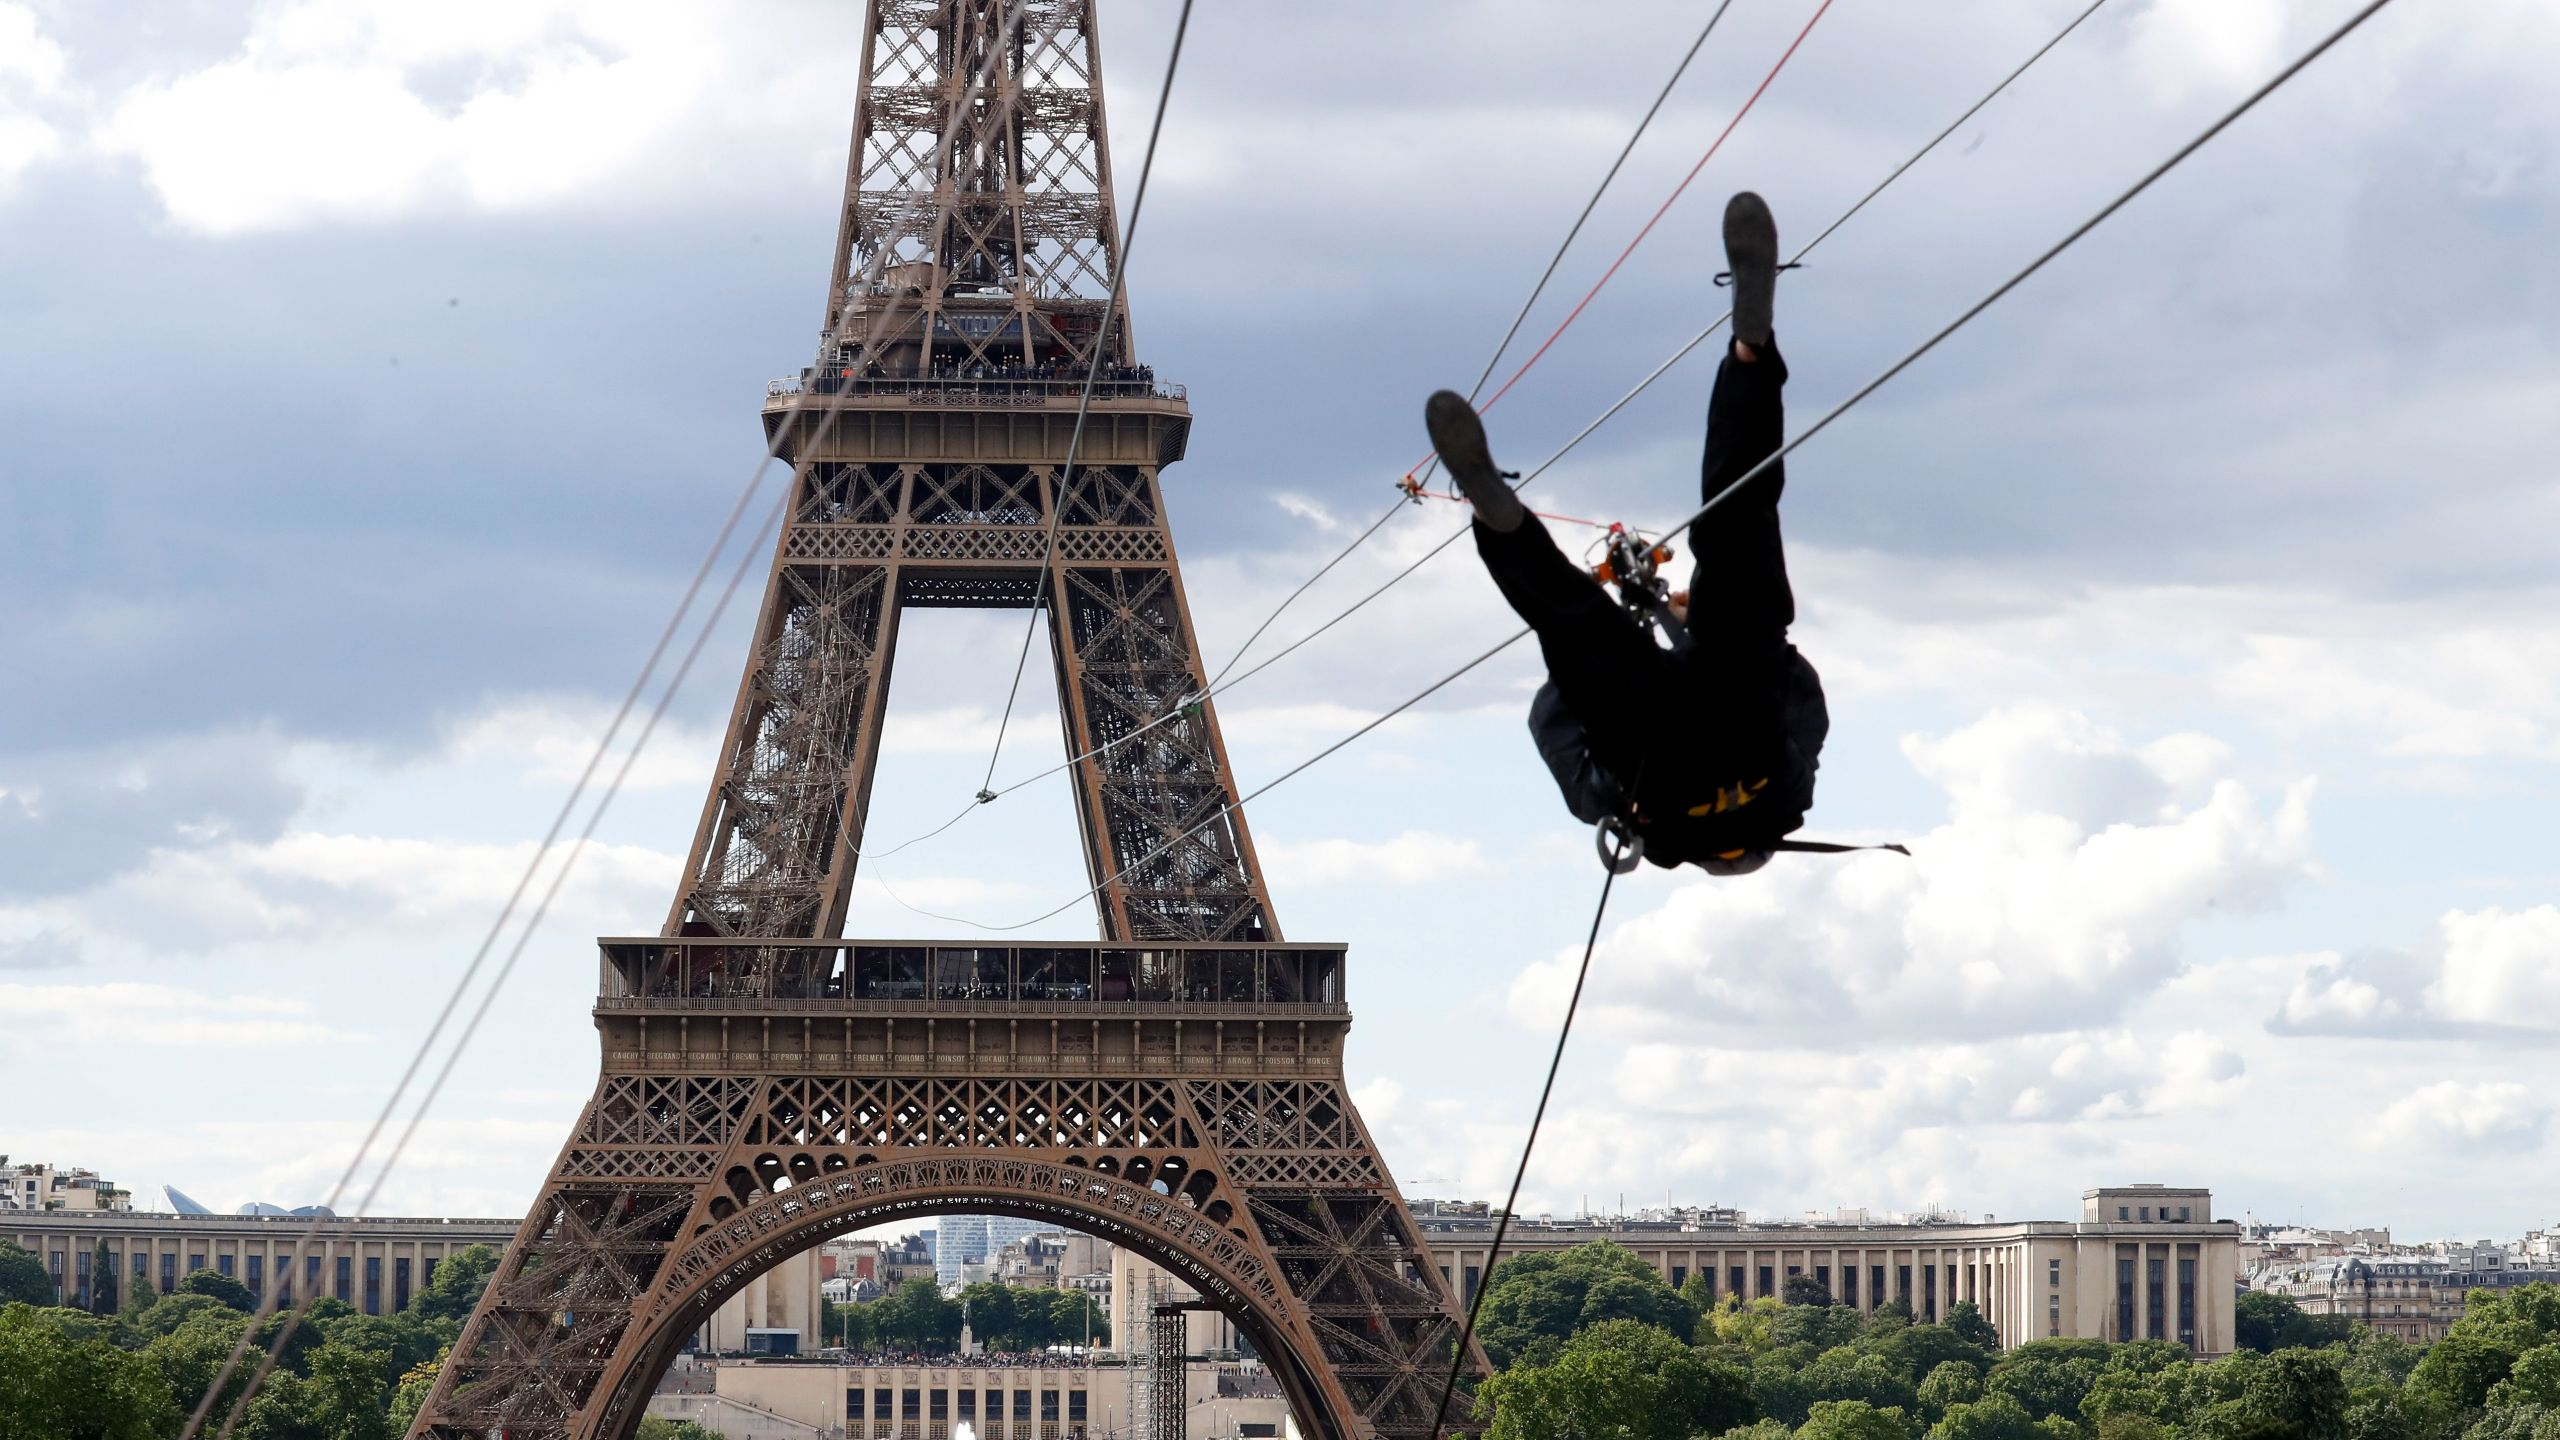 A person rides on a zip-line descending from the second floor of the Eiffel Tower on May 28, 2019 in Paris. (Credit: FRANCOIS GUILLOT/AFP/Getty Images)